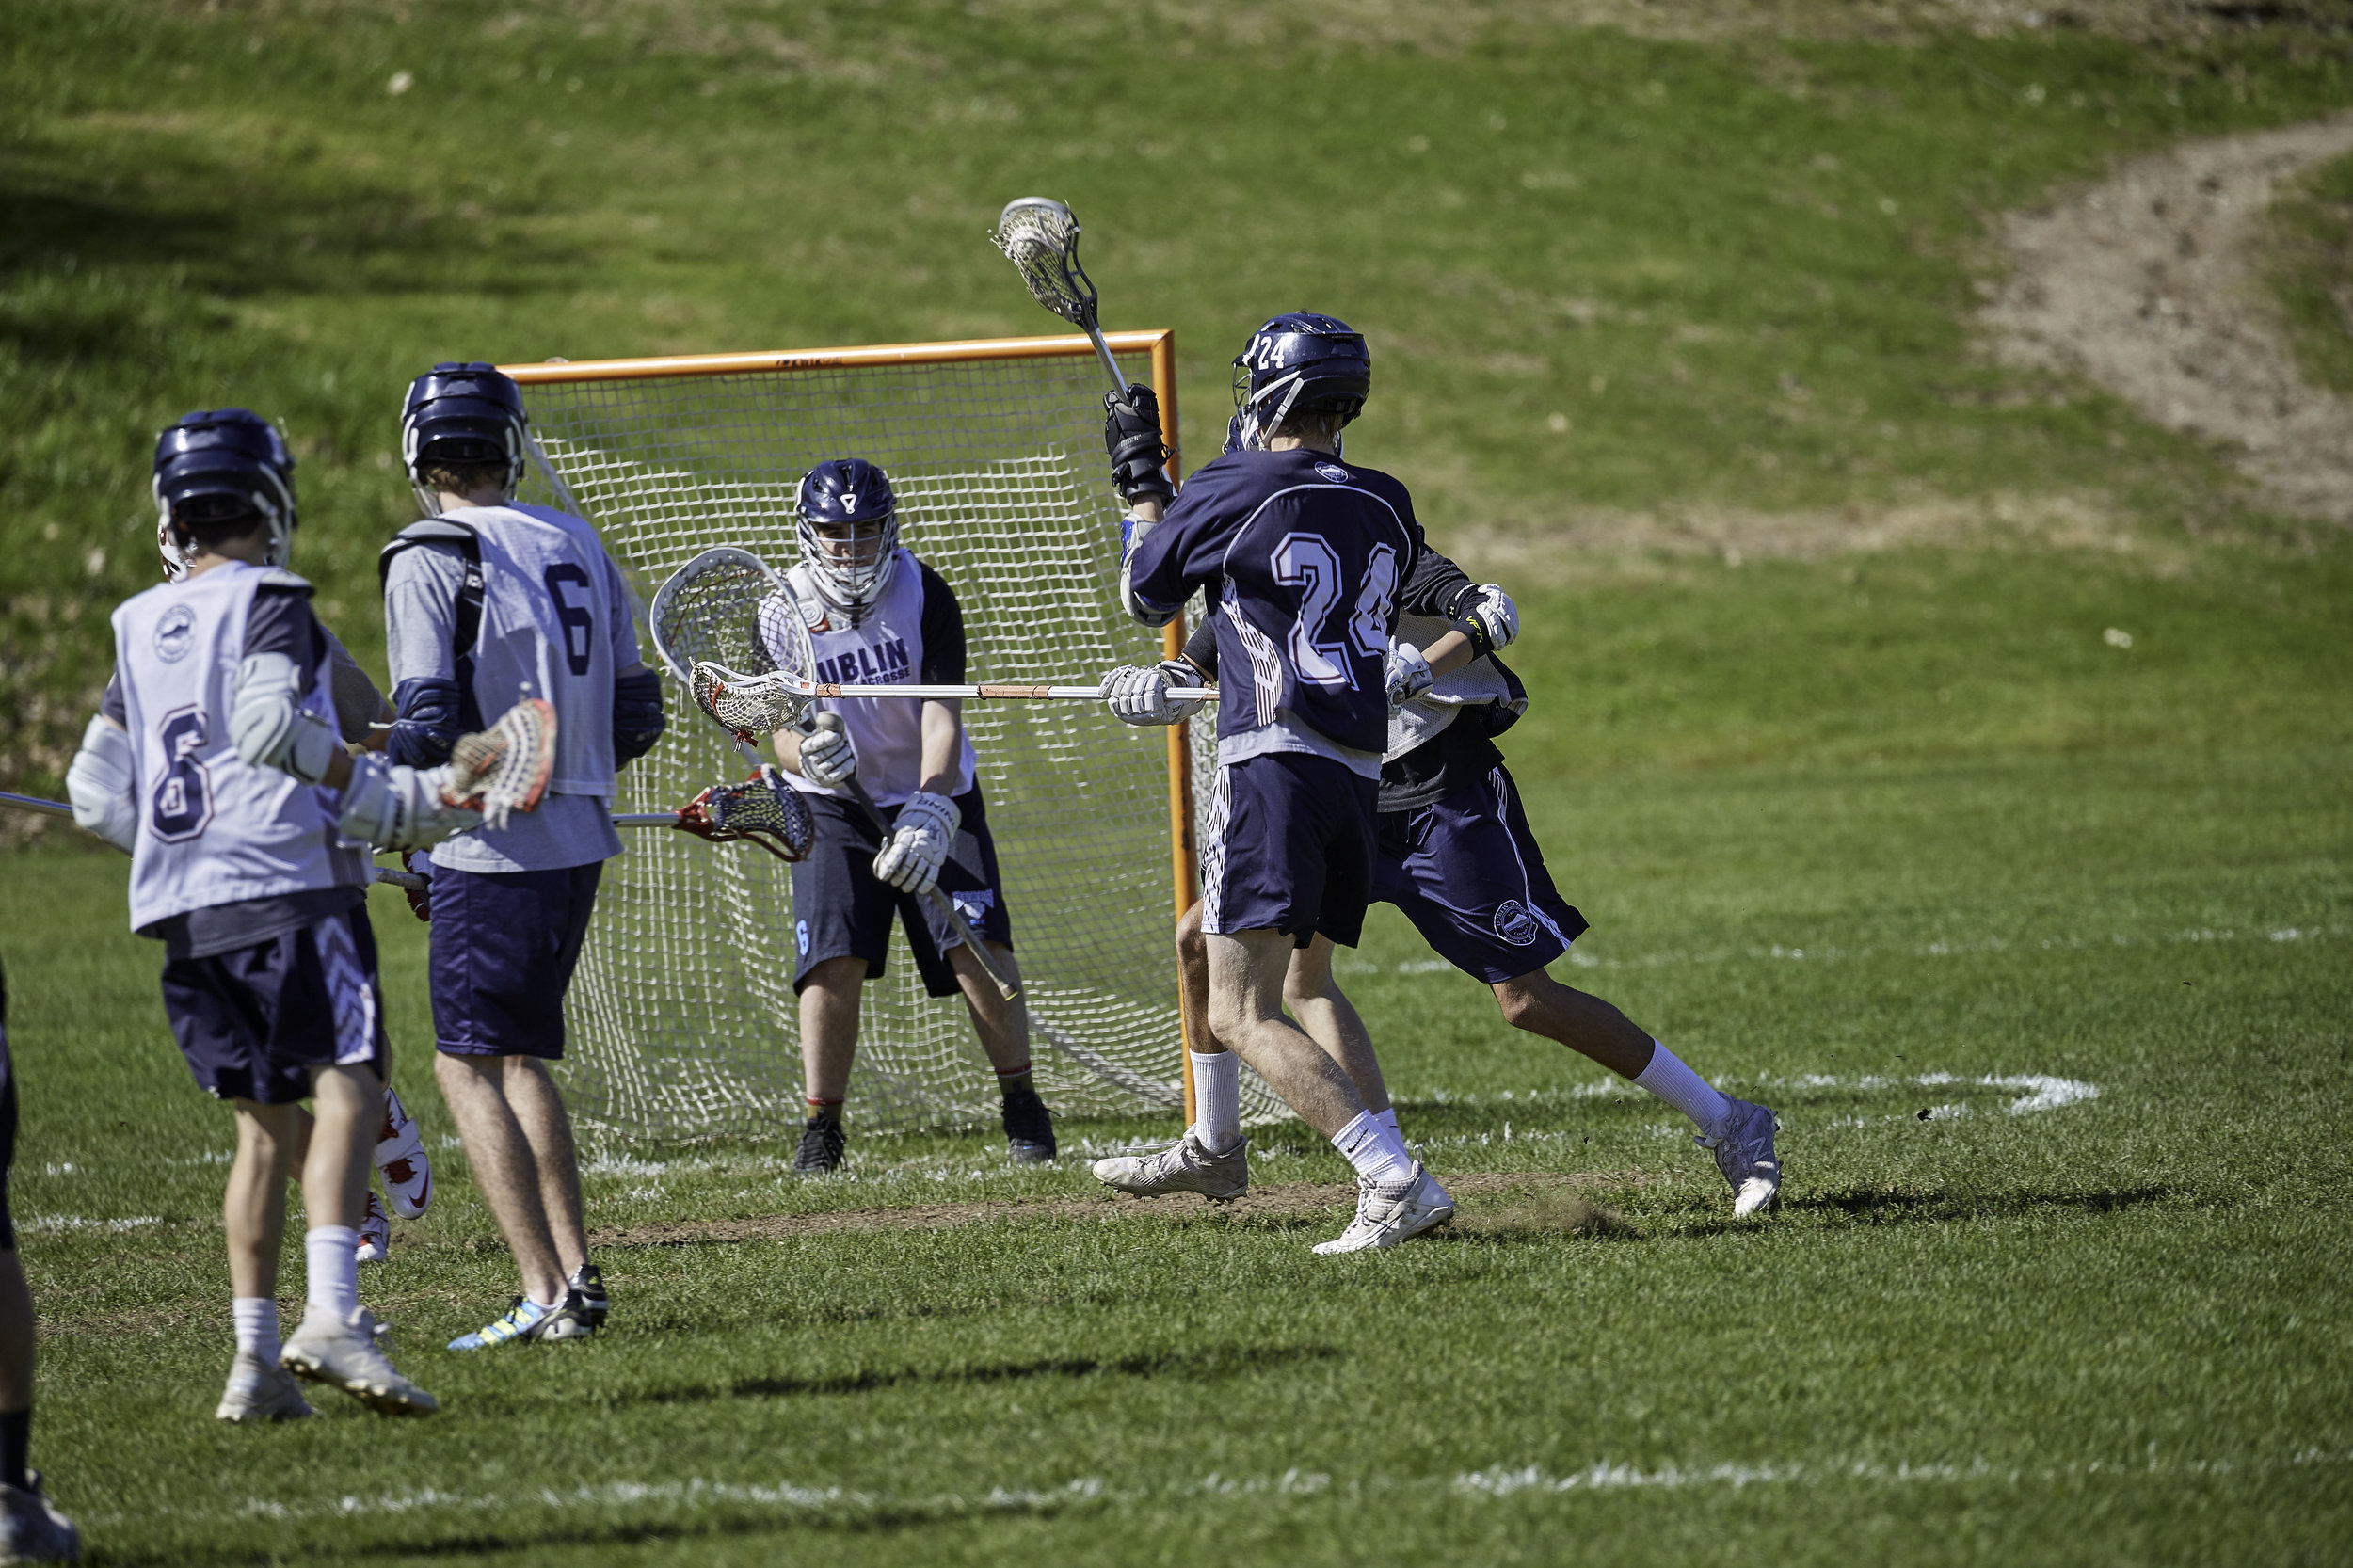 Mike Walter Alumni Game - May 18 2019 - 0145.jpg